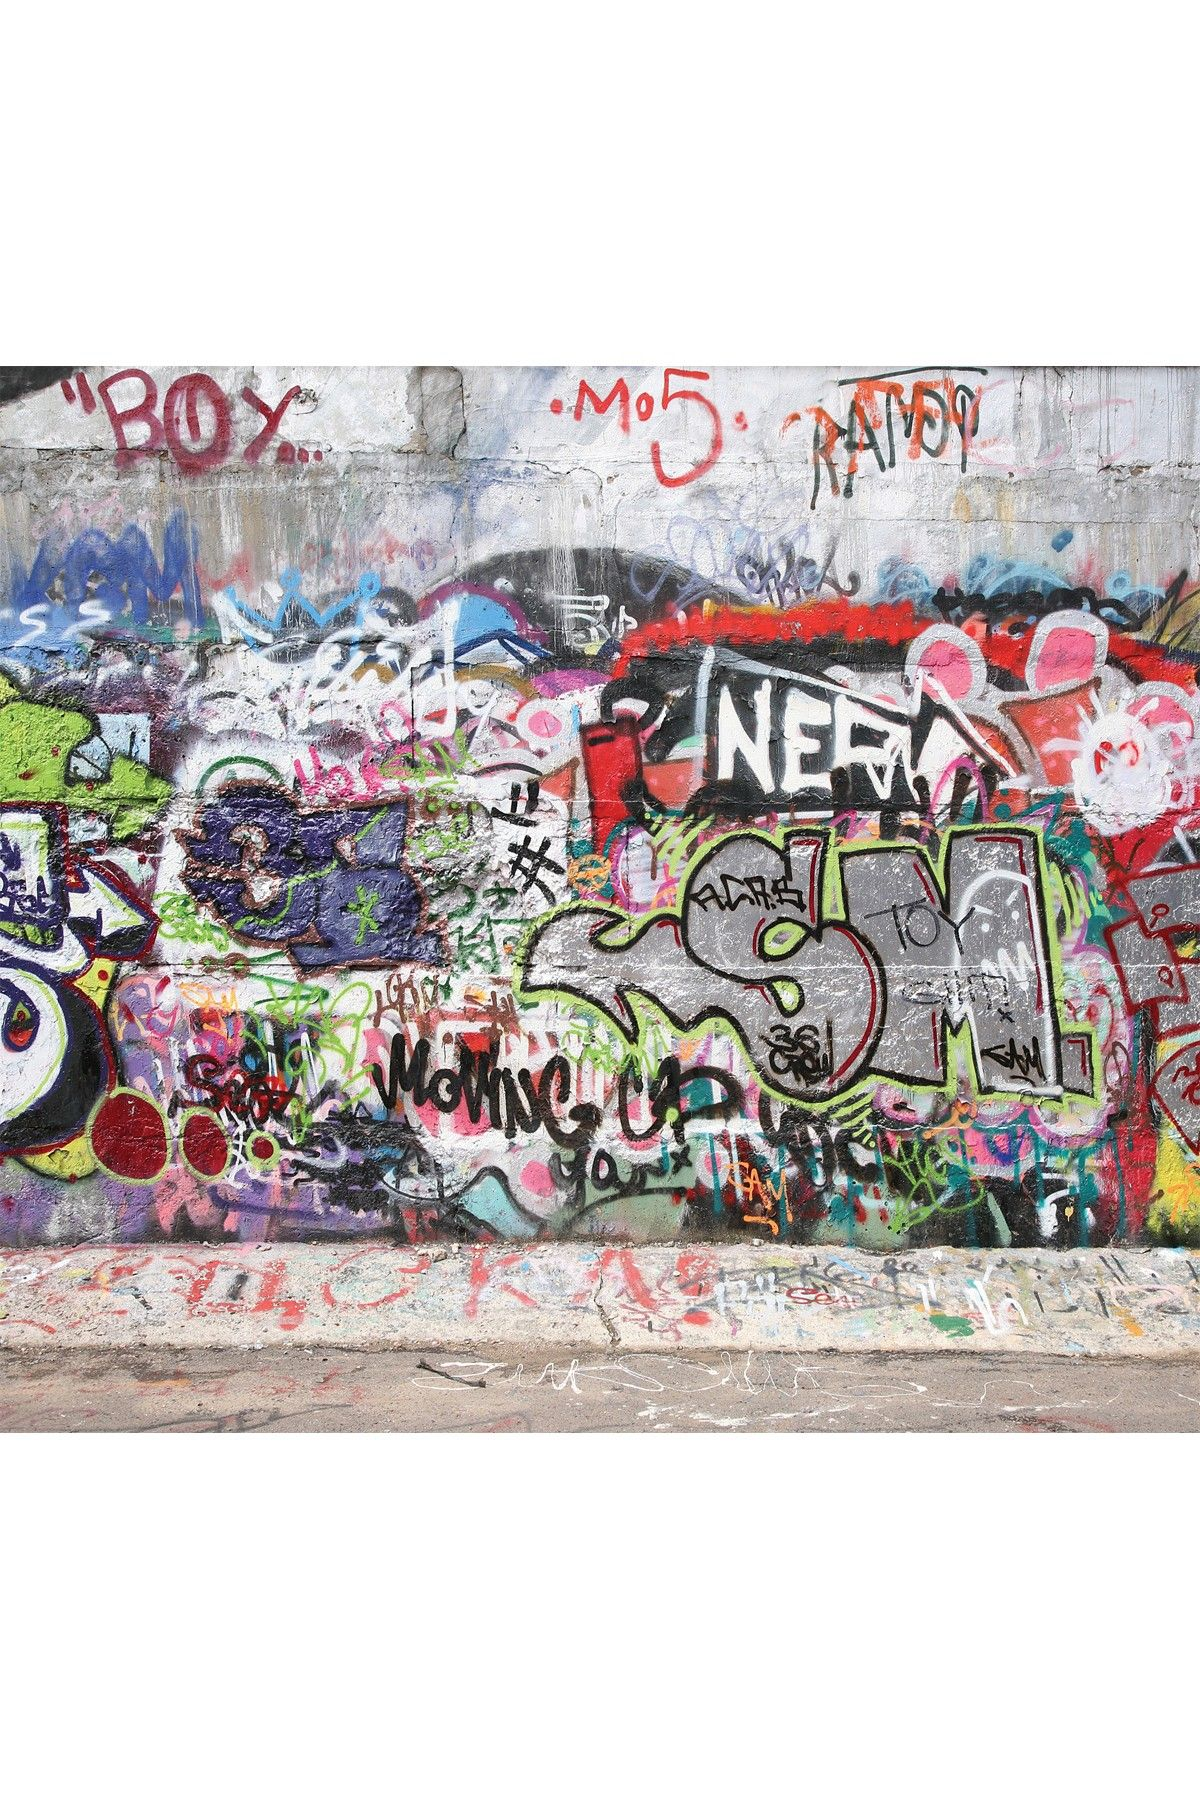 Graffiti wall wallpaper unwanted graffiti pinterest art